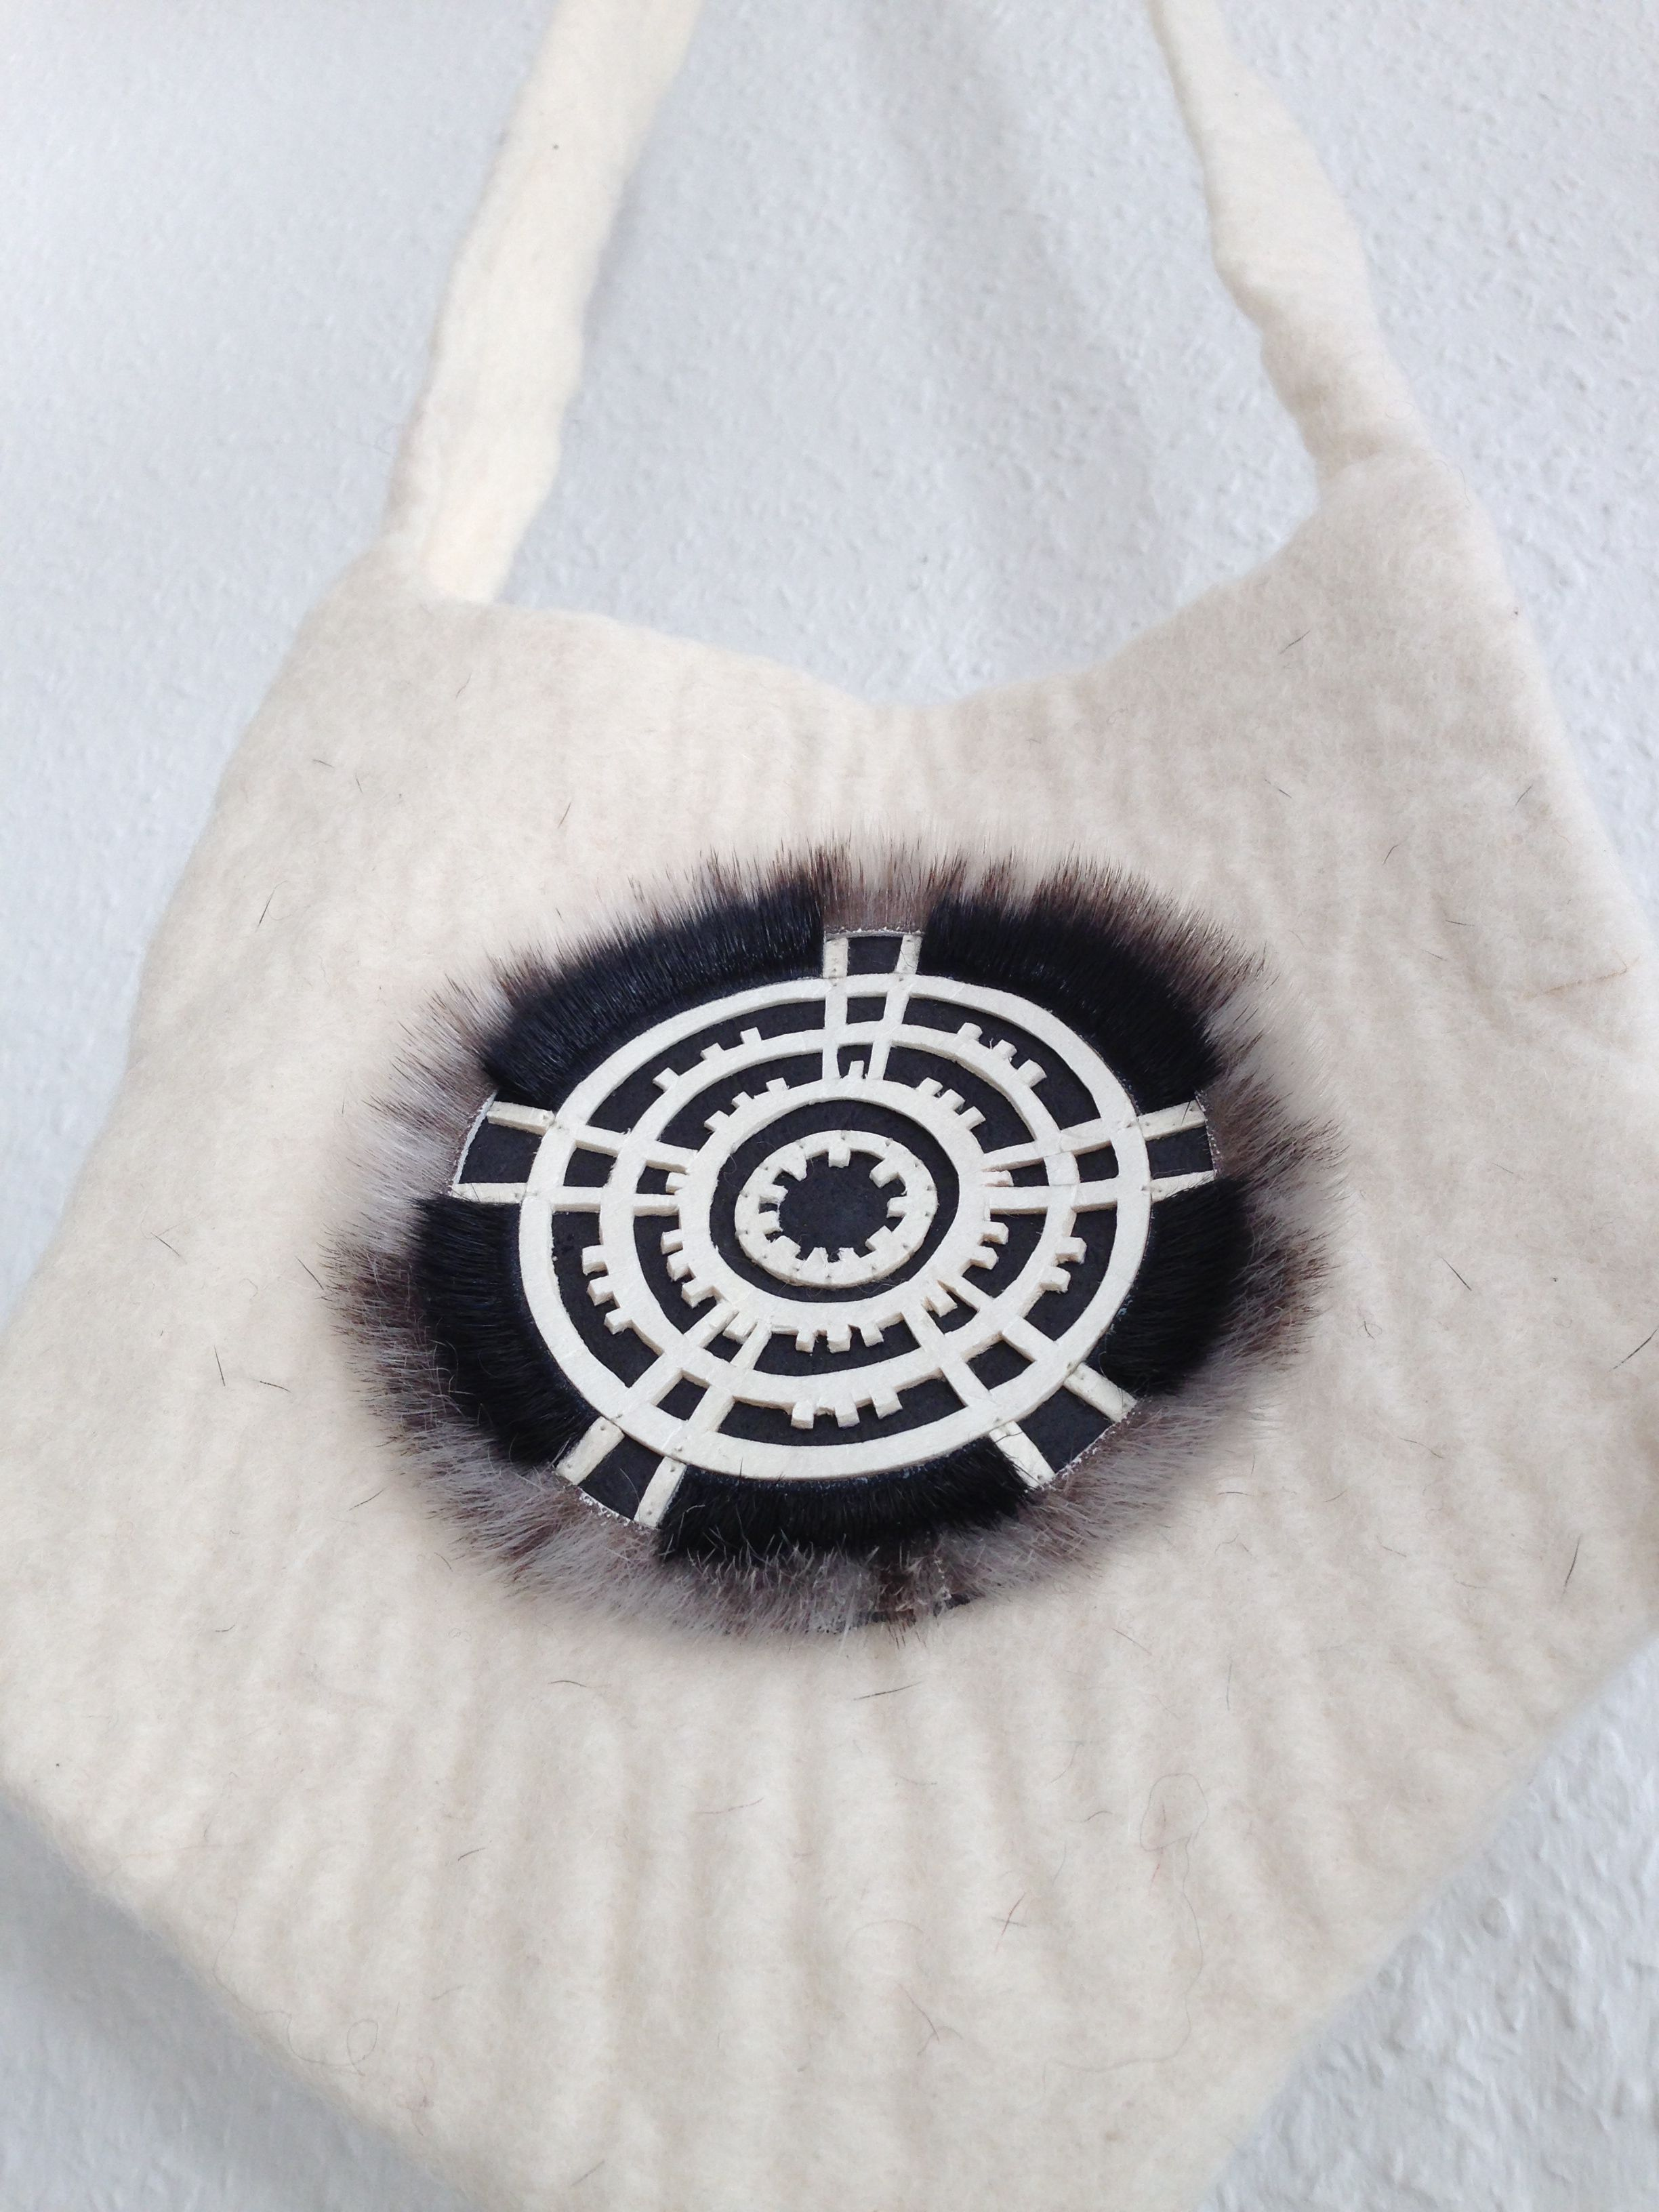 This Beautiful Wool Bag Made By Ari With The Inuit Symbol For The Sun And Being Alert To Sudden Incidents Wool Bags Bag Making Reusable Tote